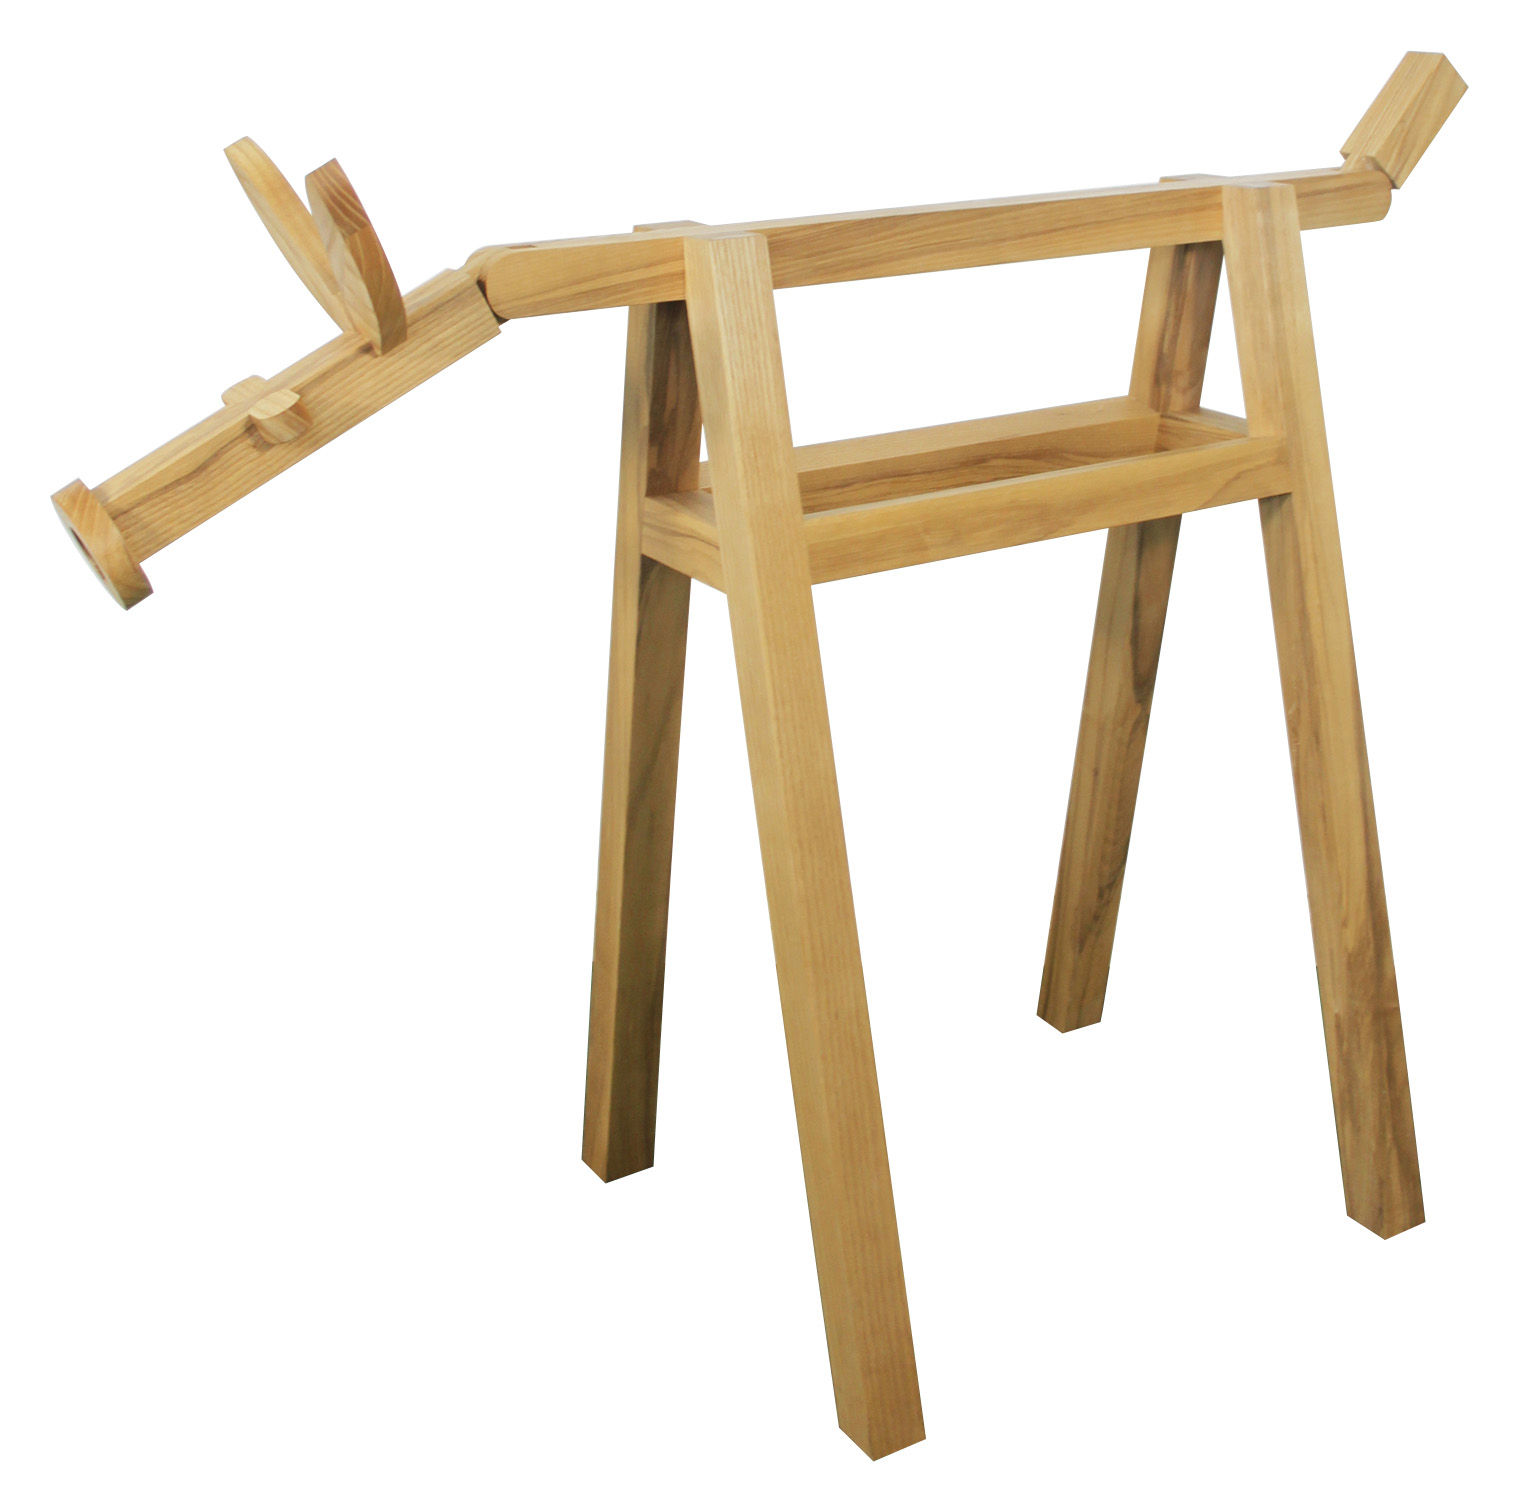 The Farm Pair Of Trestles Set Of 2 Natural Wood By Thelermont Hupton